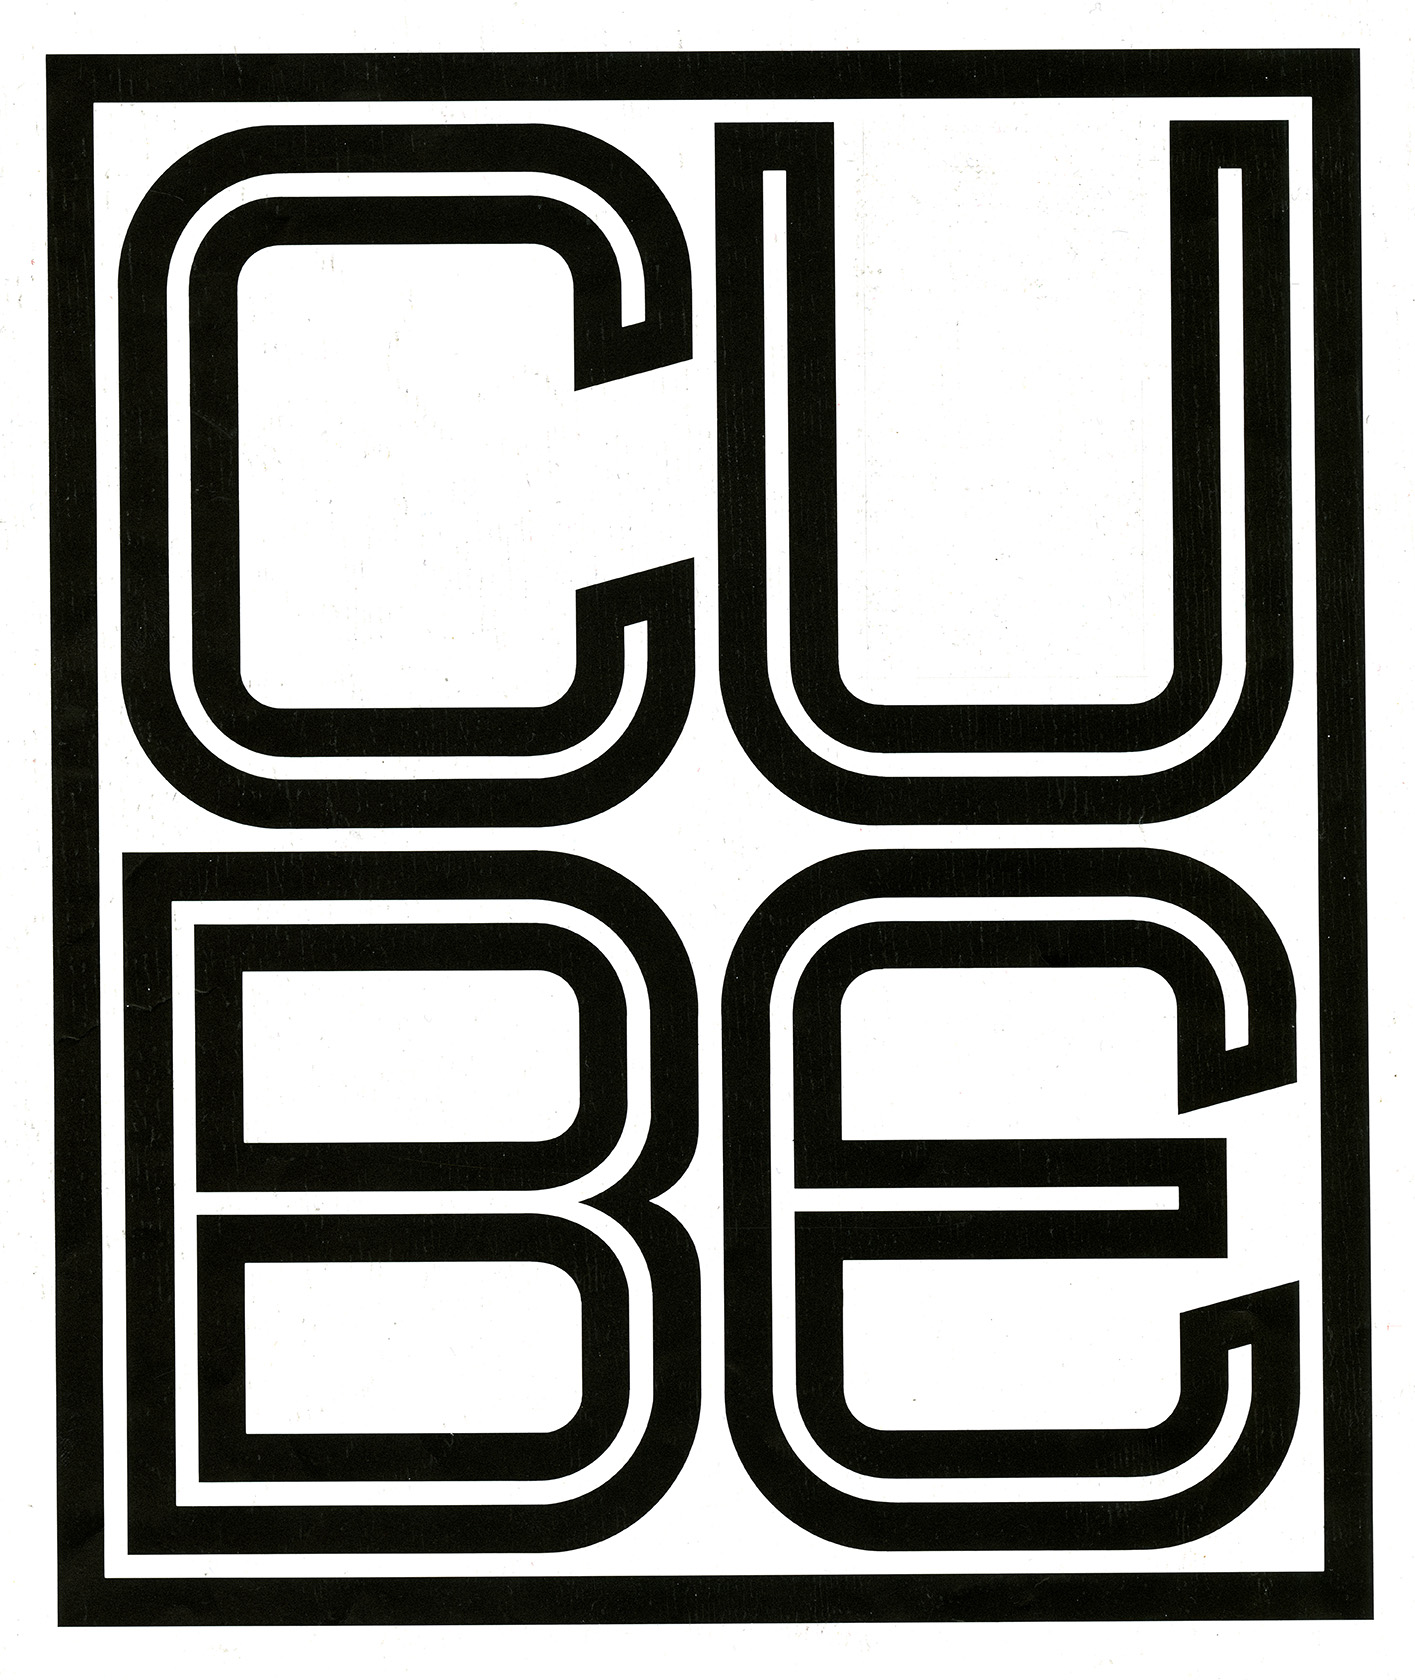 "The letters ""CUBE"" appear in a square design inside a box. Black against white background."